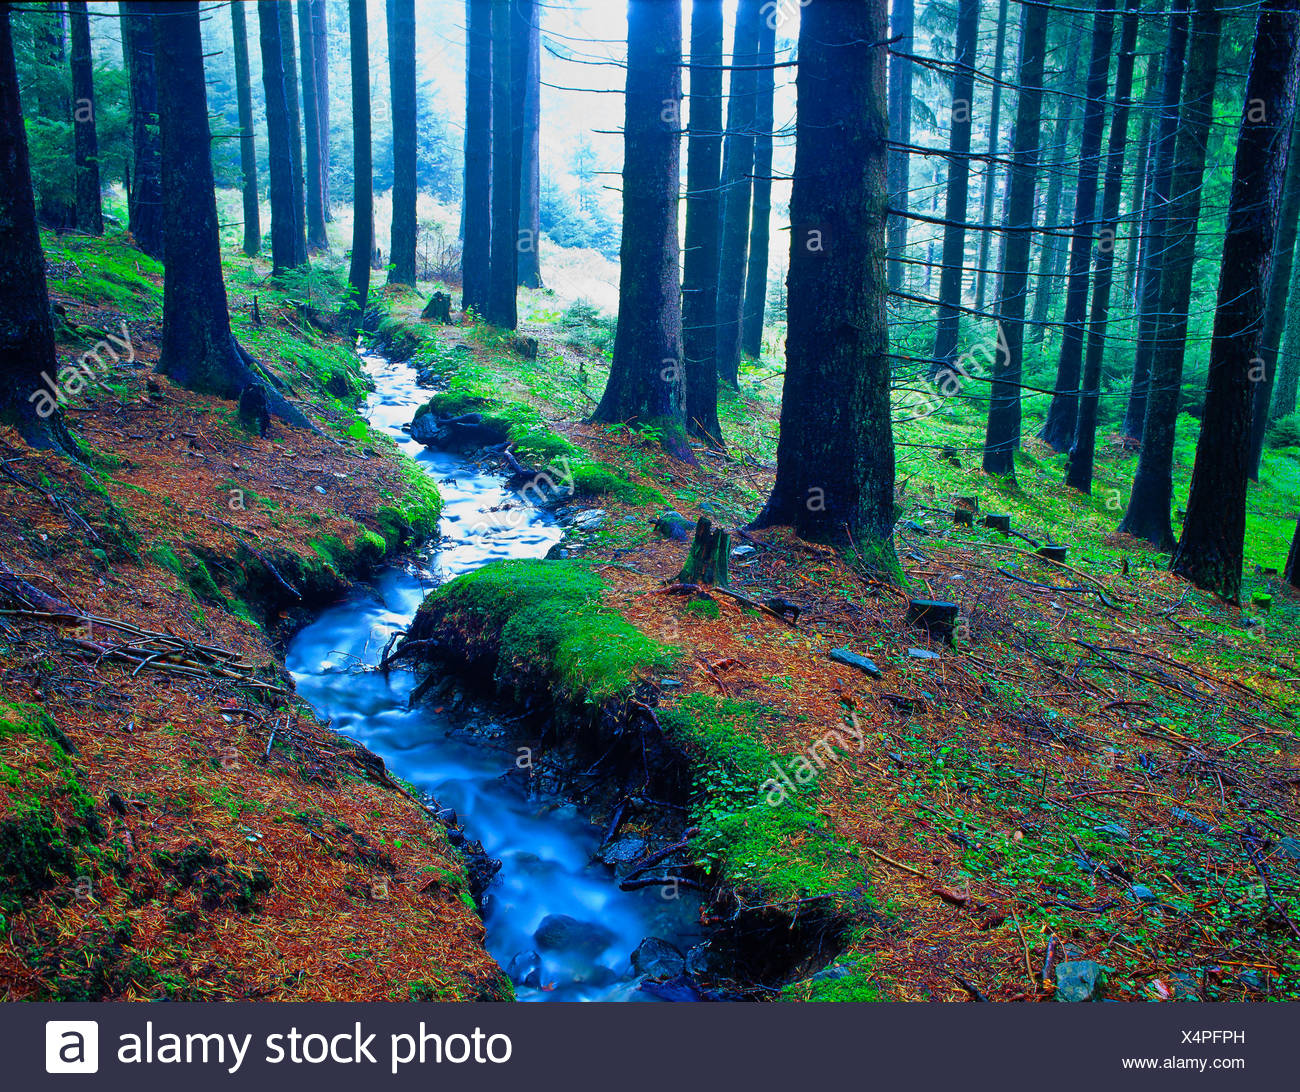 Austria, Europe, Tyrol, Sistrans, wood, forest, spruces, spruce forest, trees, water, little brooks, brook, flowing, blurred, Mi - Stock Image